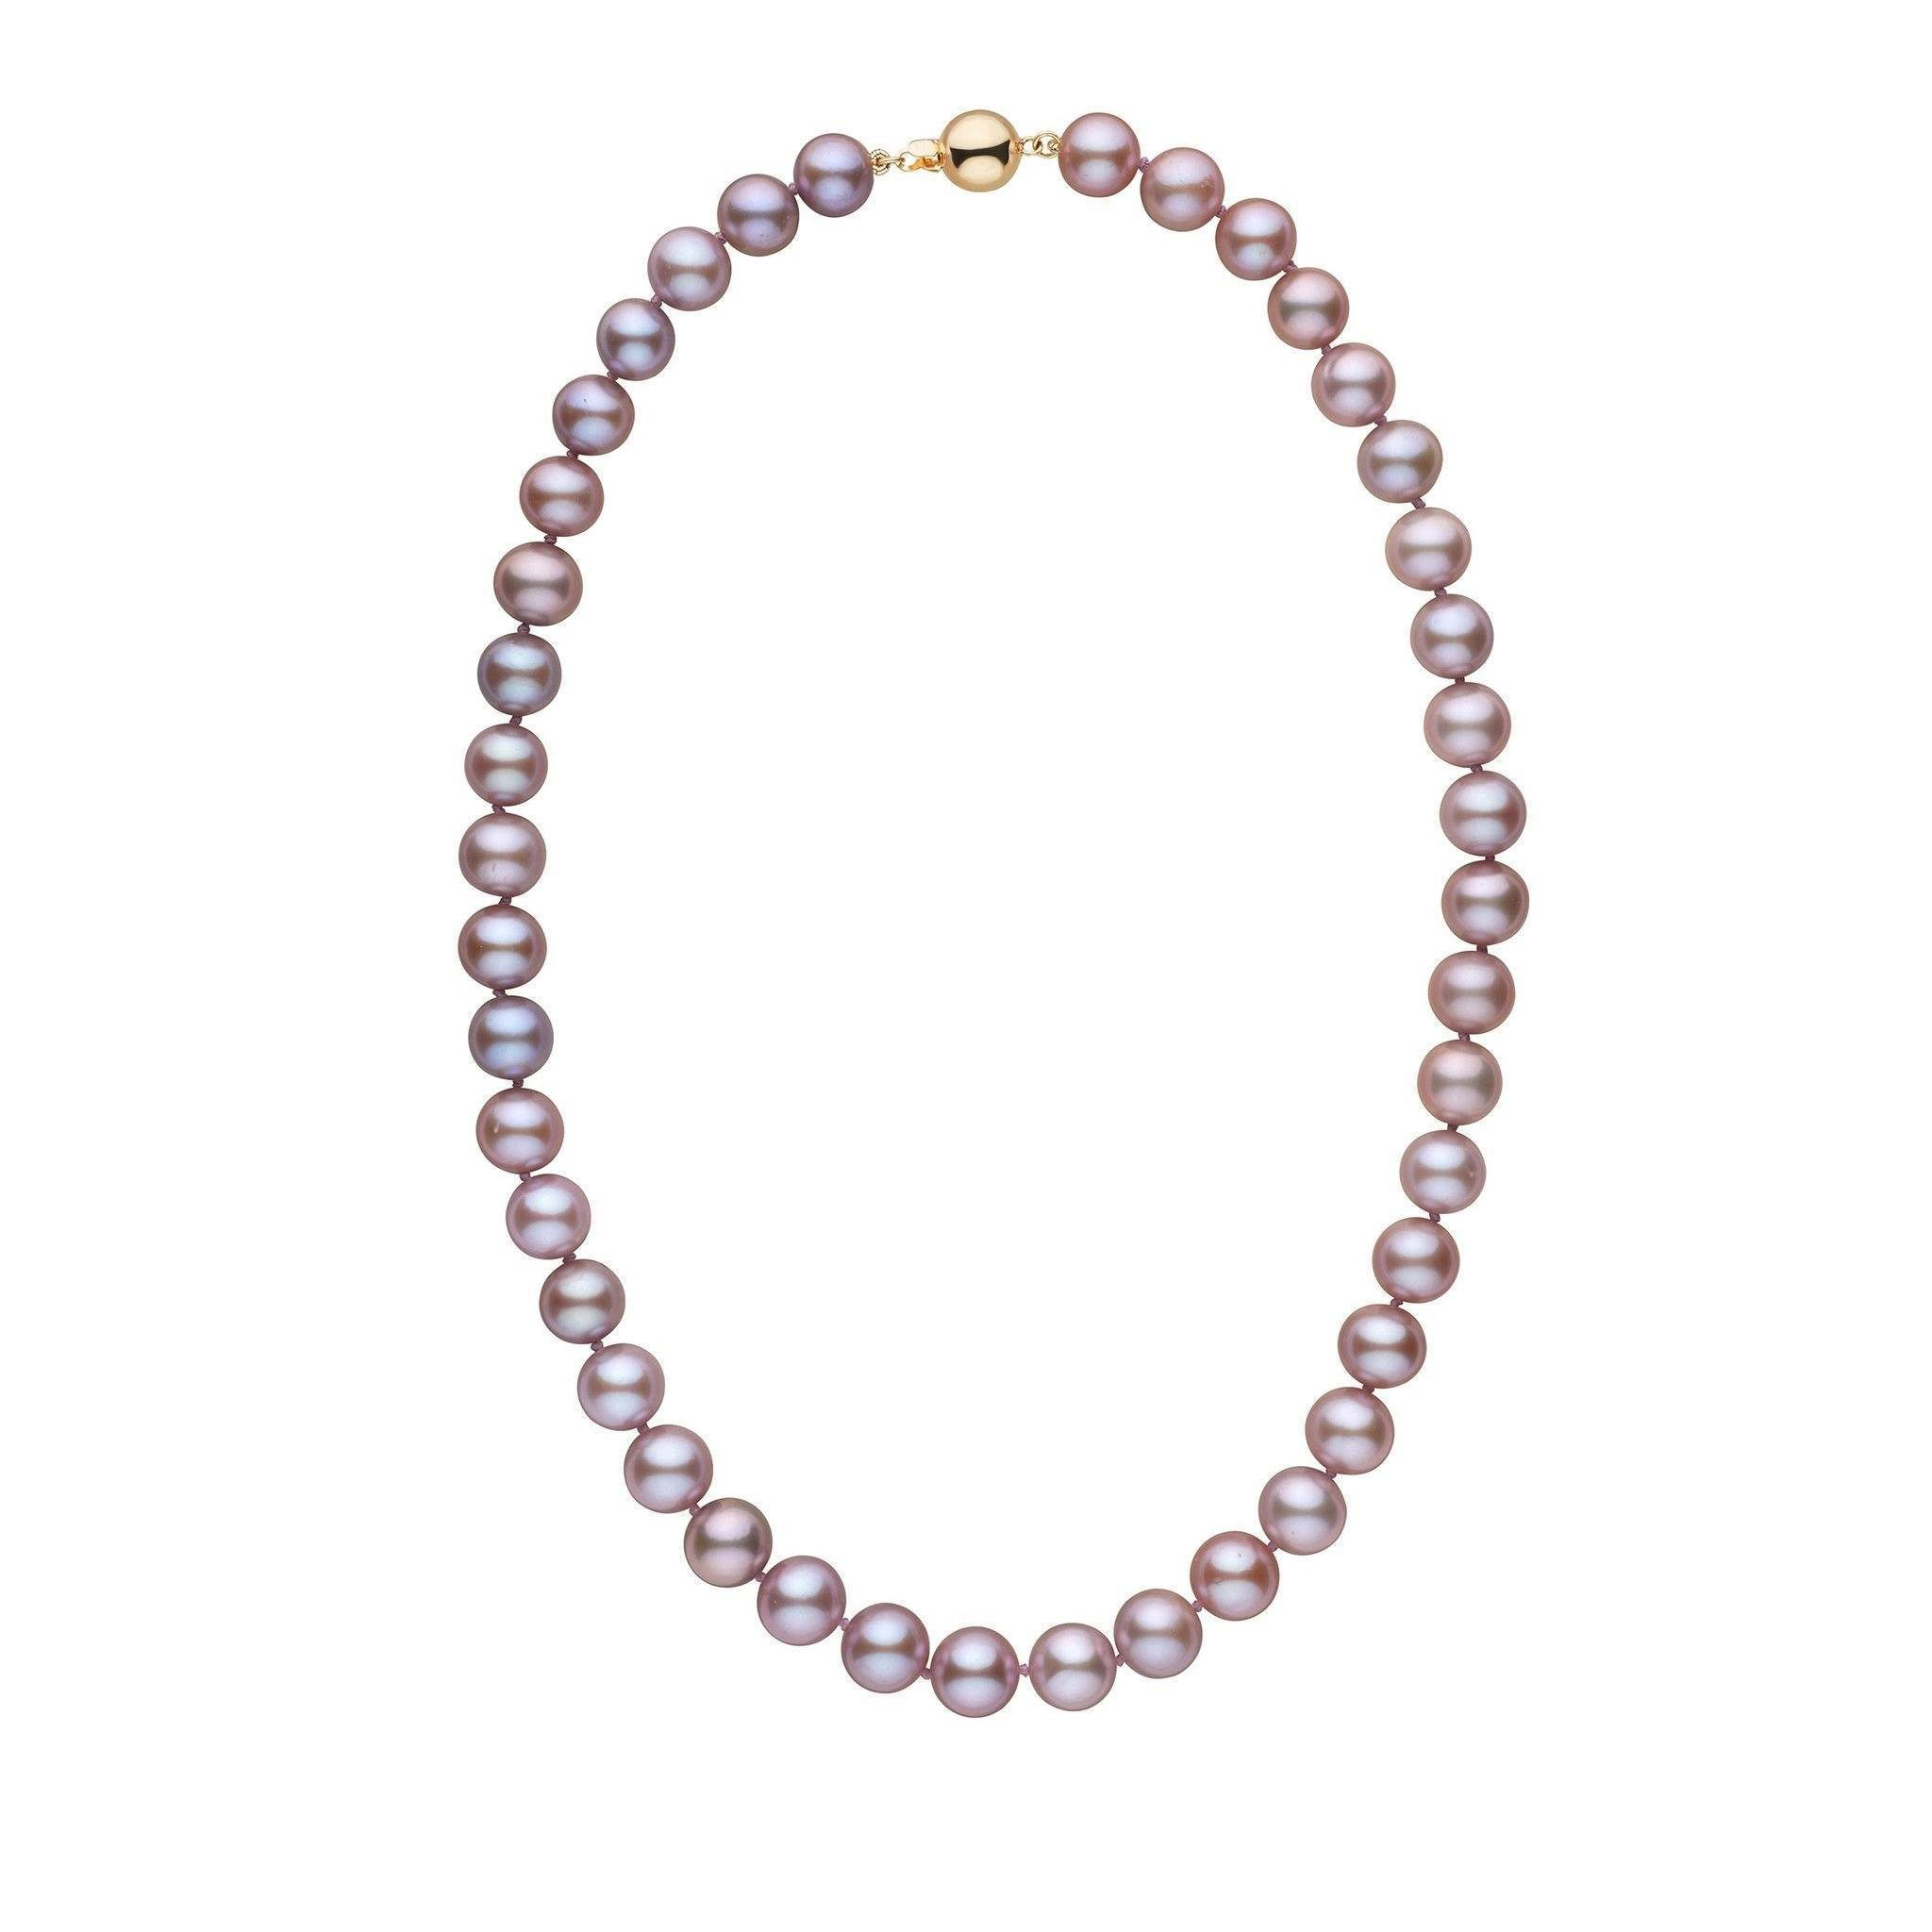 9.5-10.5 mm 18 Inch AA+ Lavender Freshwater Pearl Necklace